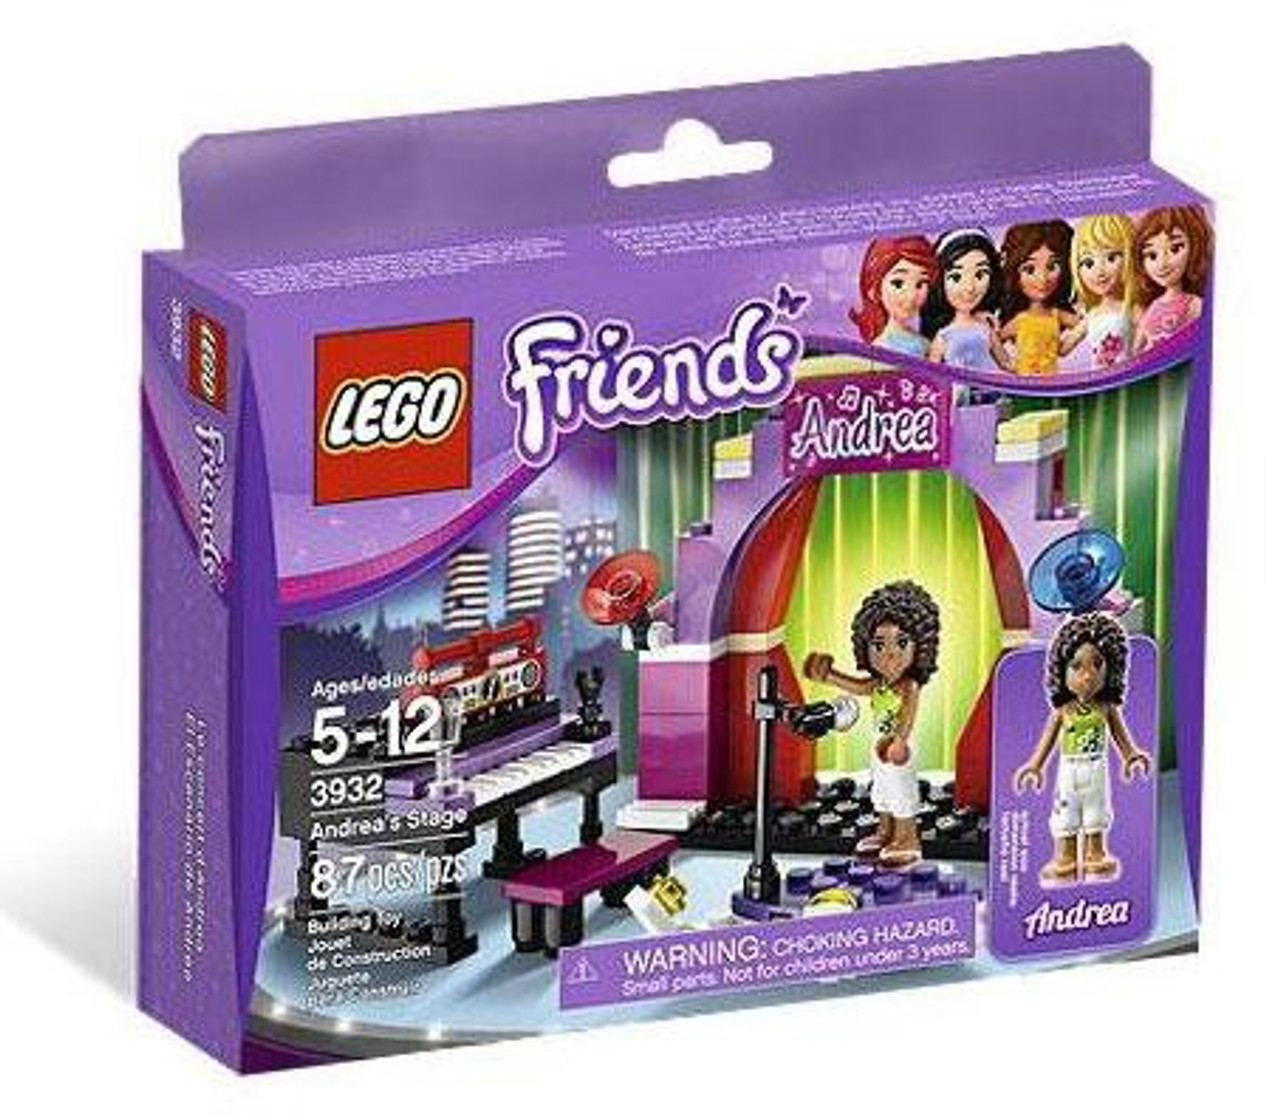 LEGO Friends Andrea's Stage Set #3932